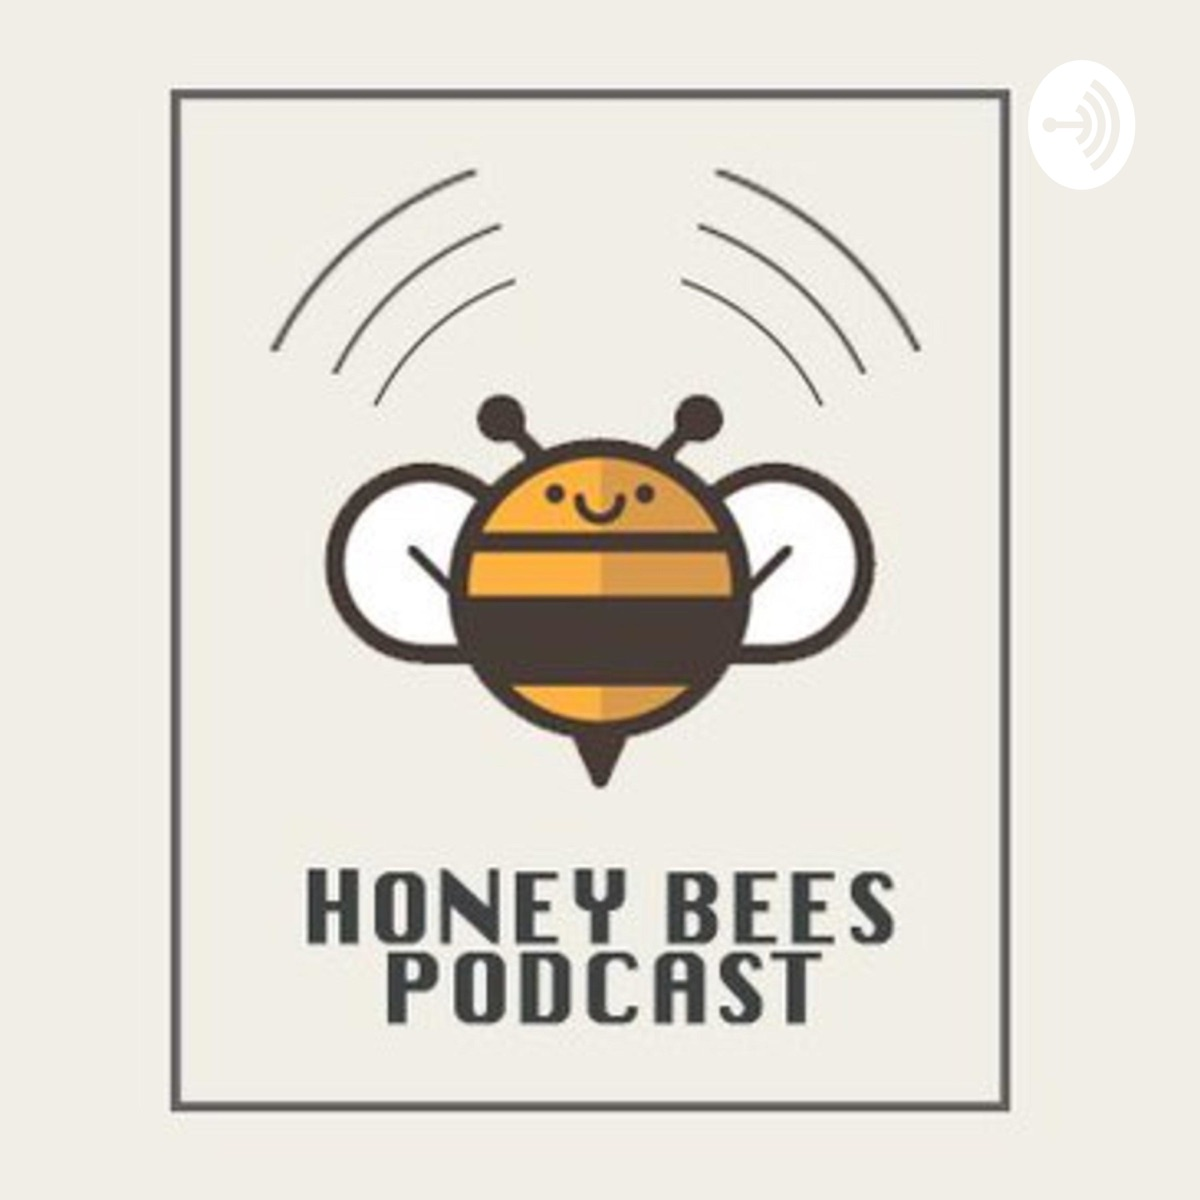 بودكاست هونيبيز | Honeybees Podcast